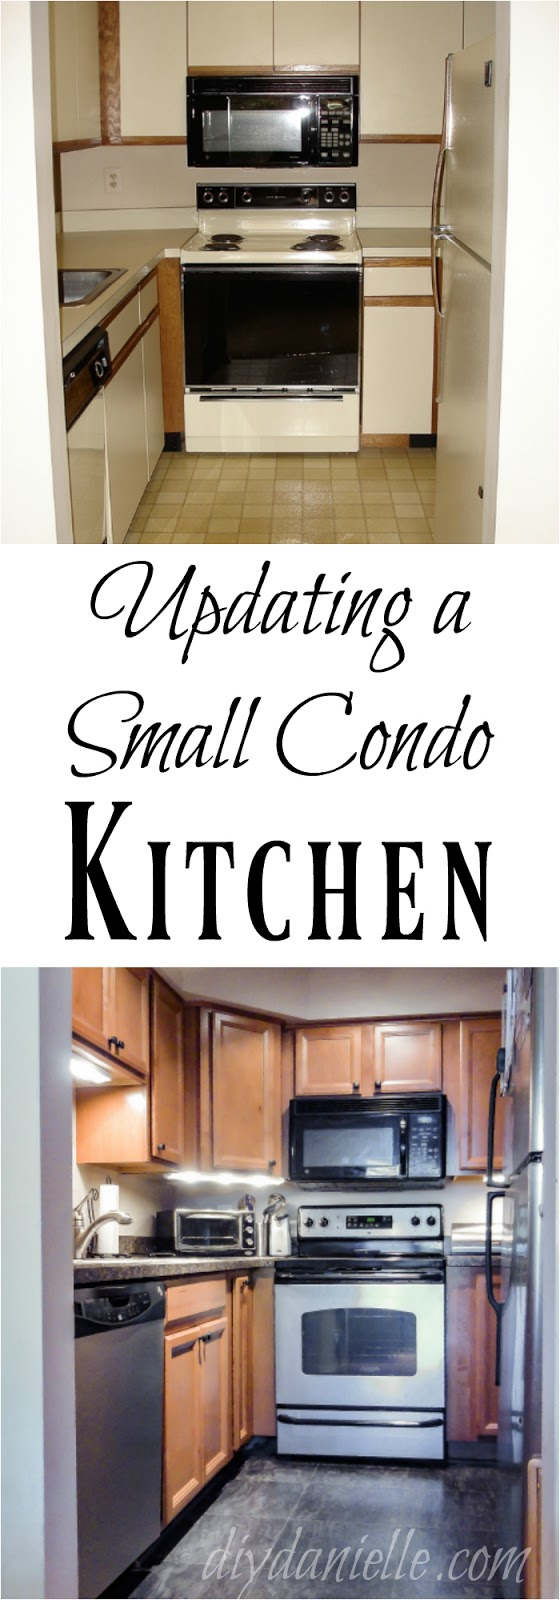 Renovated small kitchen with flooring, lighting, cabinets, appliances, and counters.